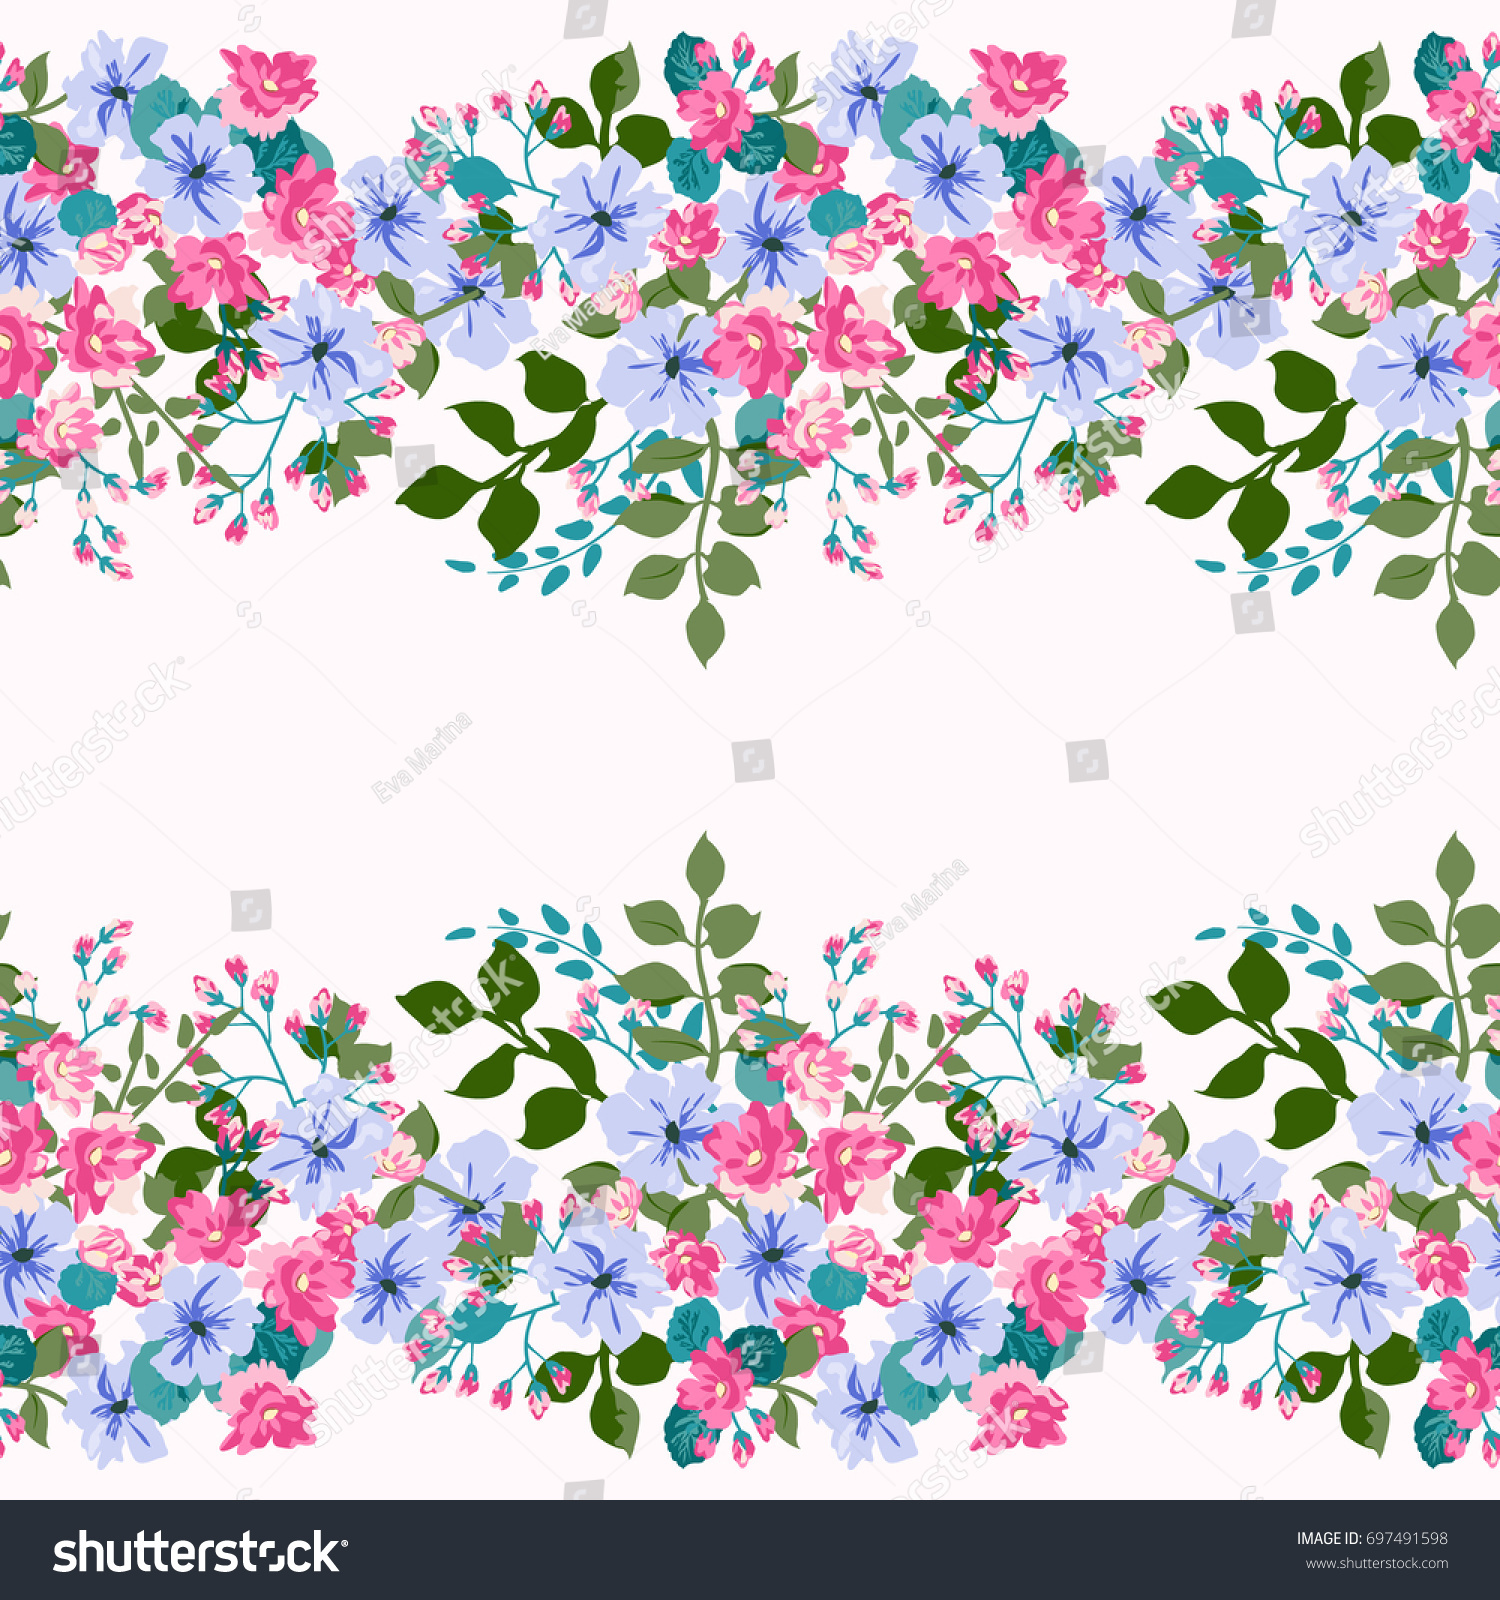 Floral Border Country Style Bouquet Rustic Royalty Free Stock Image